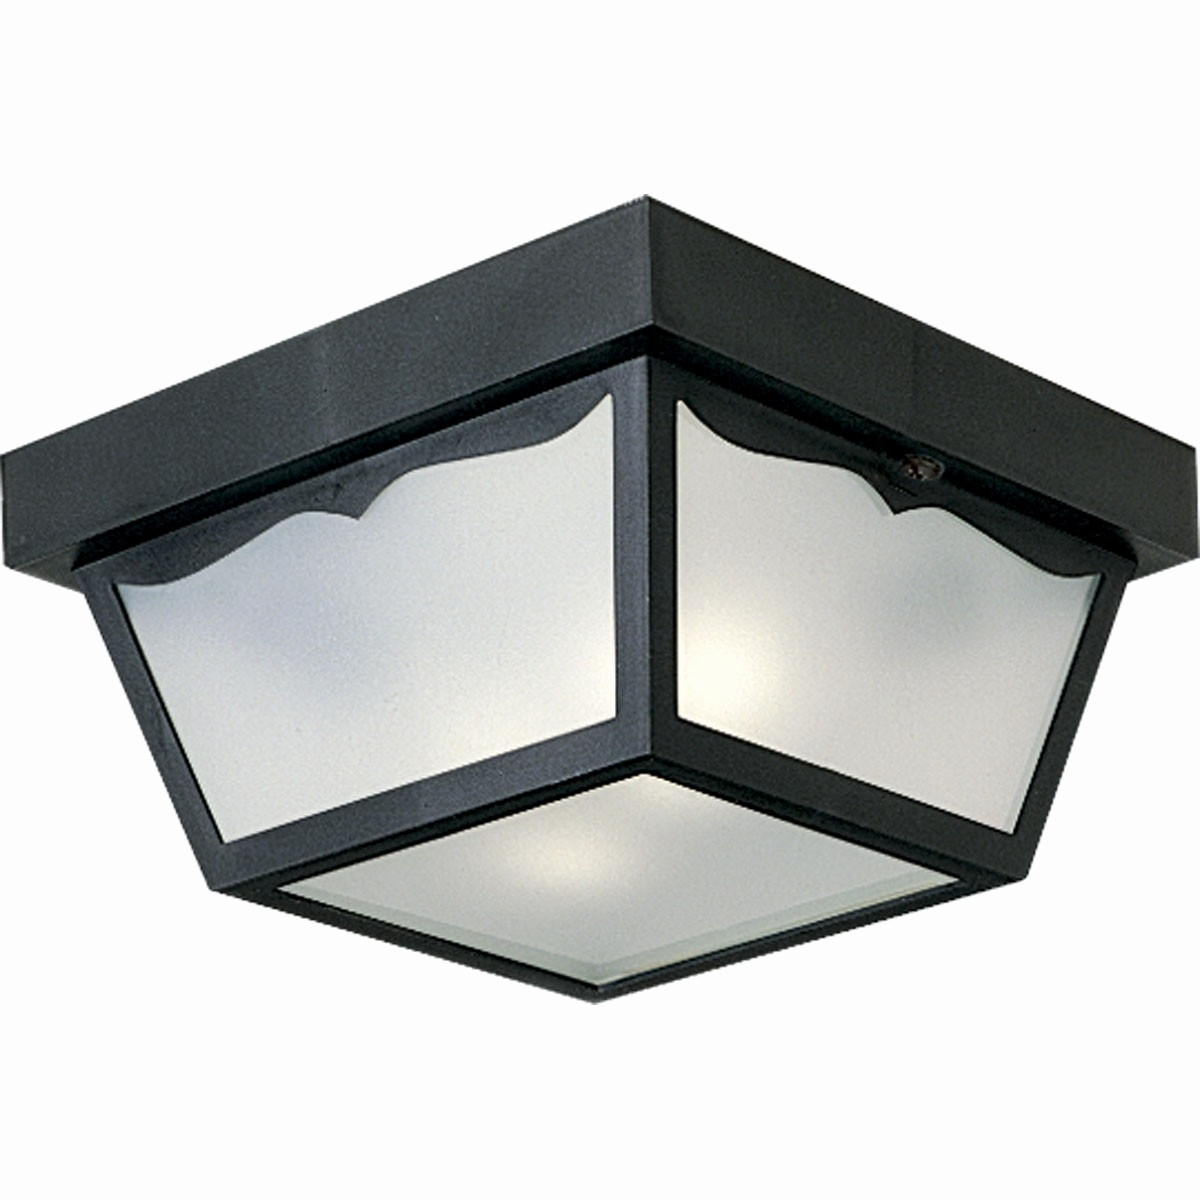 Inspiration about 20 Awesome Motion Sensor Outdoor Ceiling Light | Best Home Template Throughout Outdoor Ceiling Motion Sensor Lights (#6 of 15)